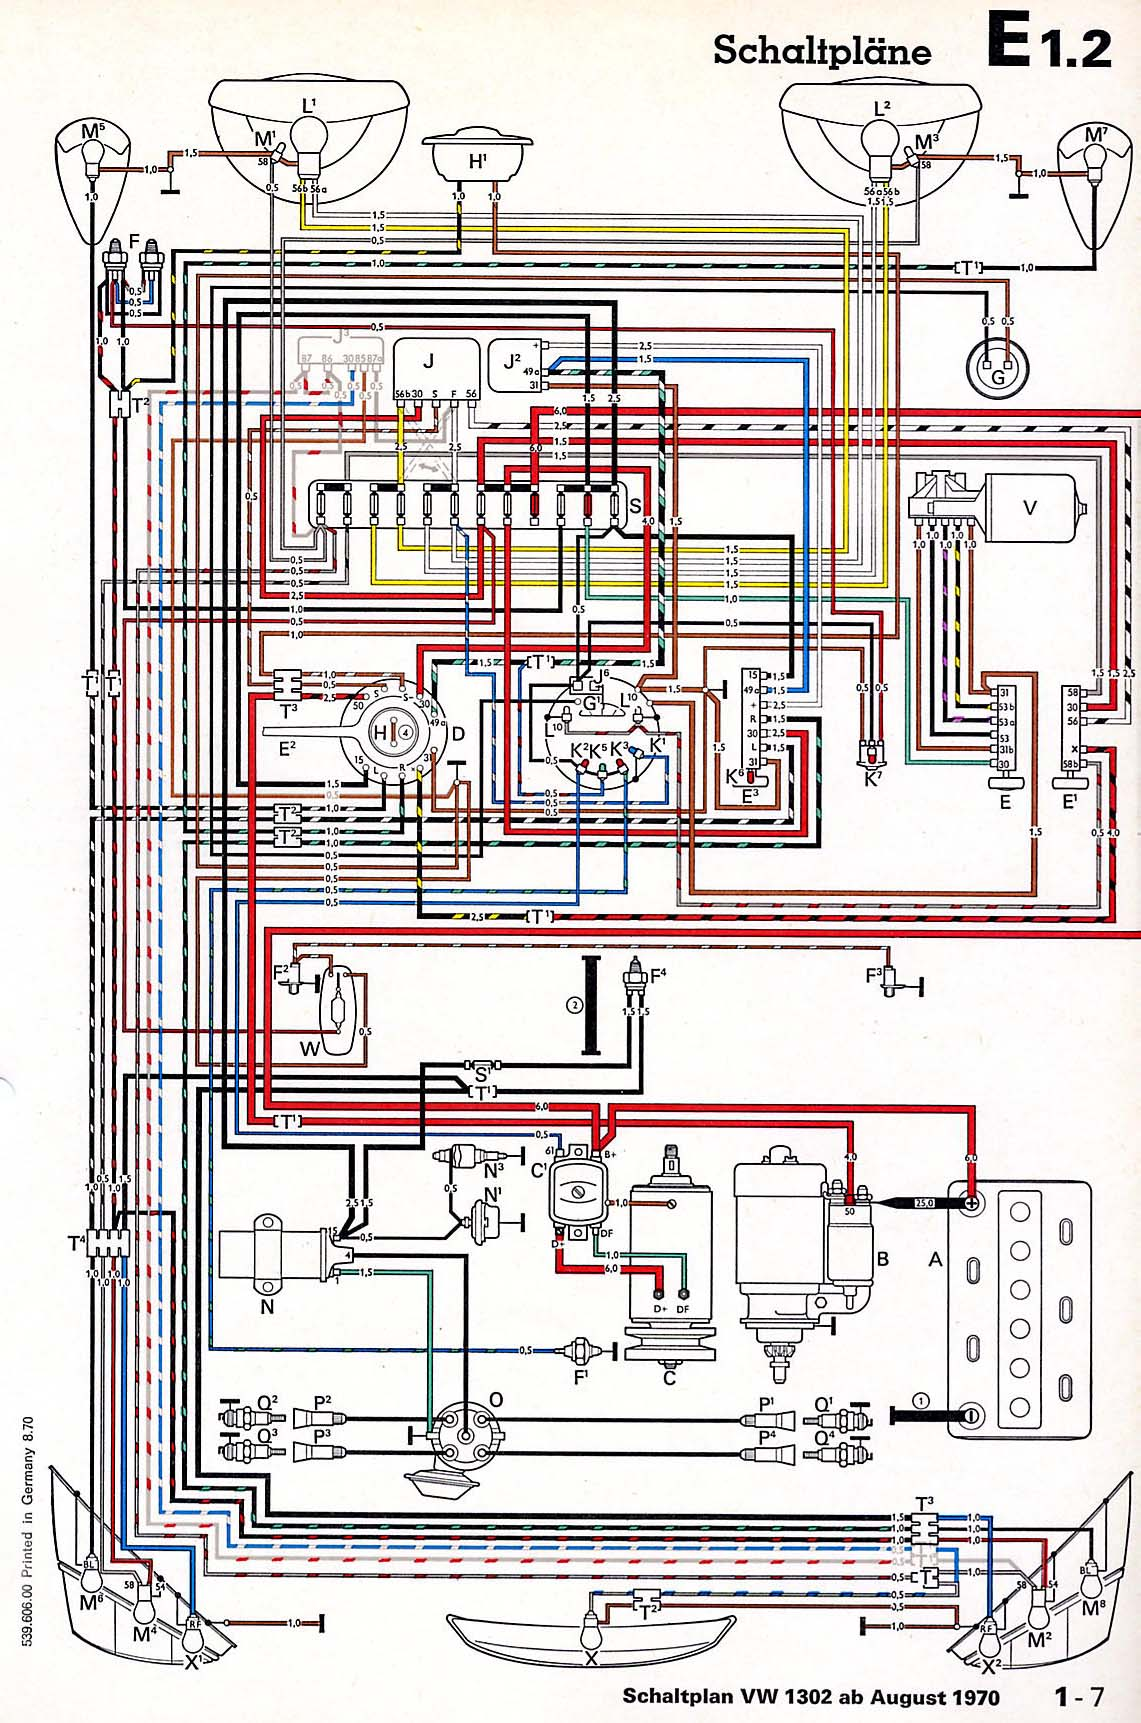 wiring_diagram_1970 wiring diagram for 1971 vw beetle the wiring diagram 1970 vw beetle wiring diagram at edmiracle.co